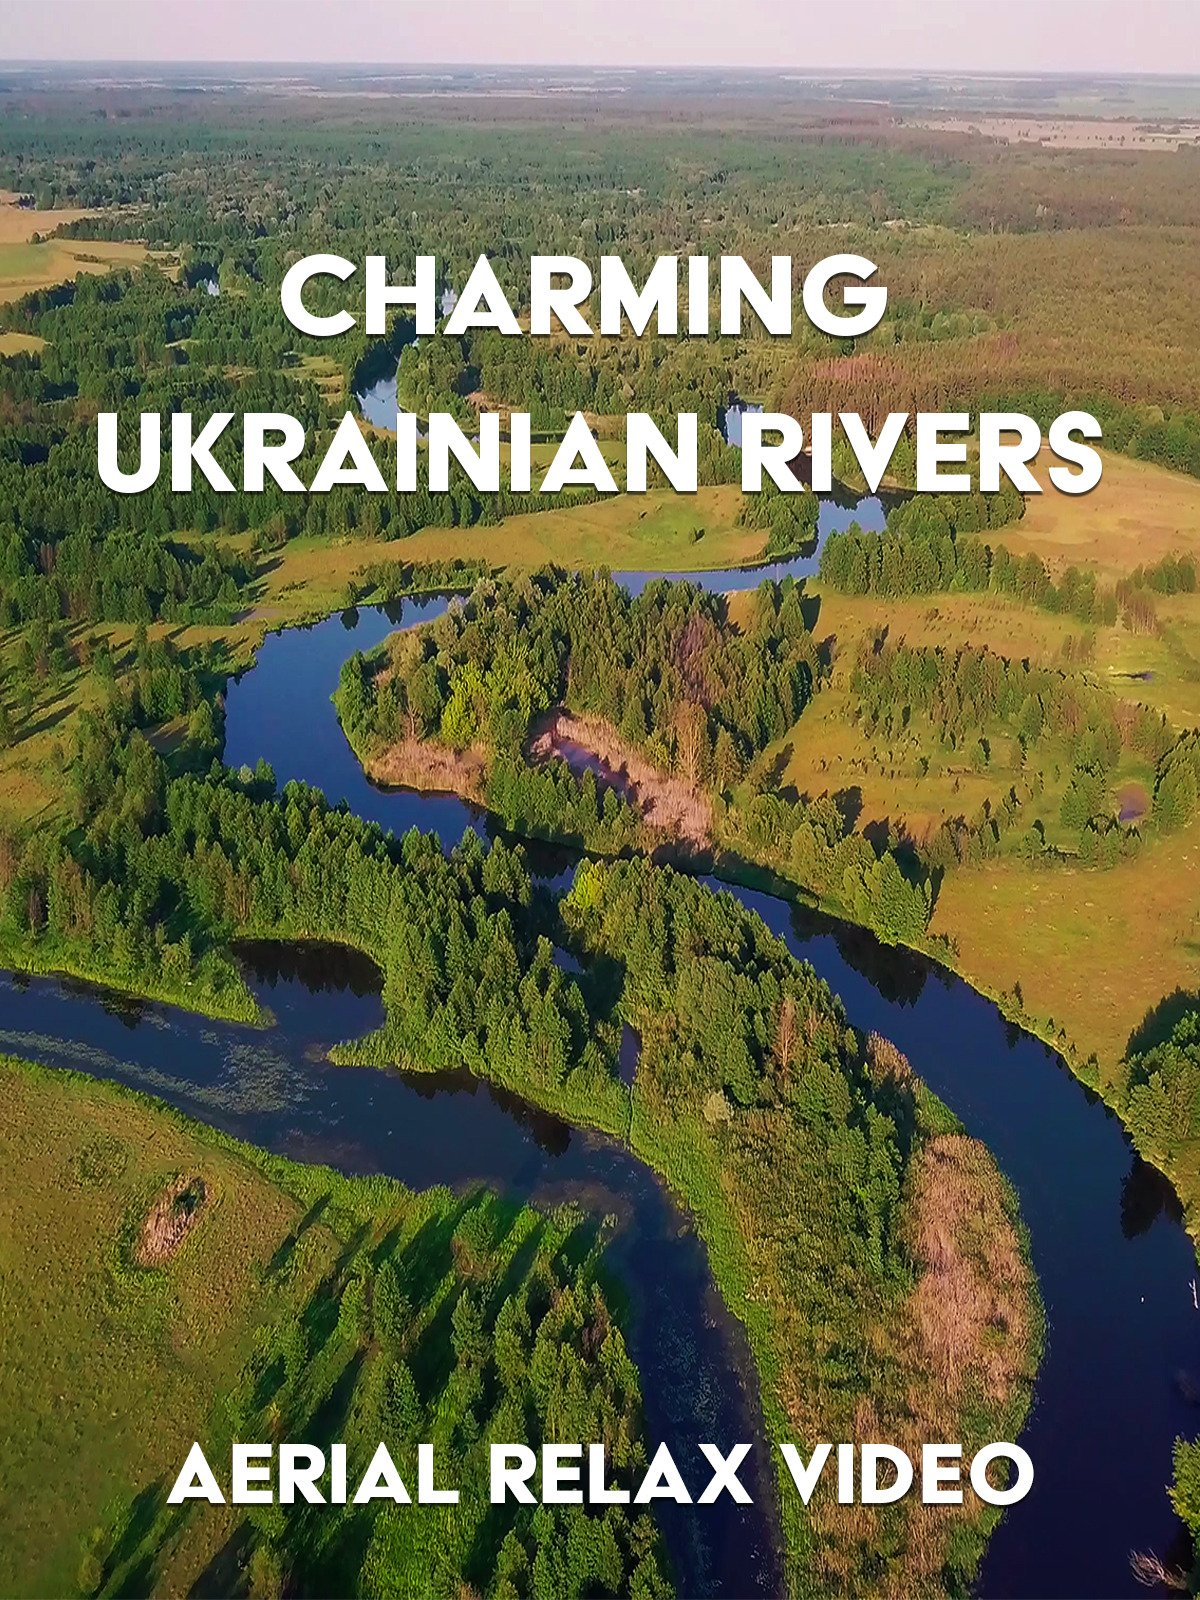 Aerial Relax Video: Charming Ukrainian Rivers